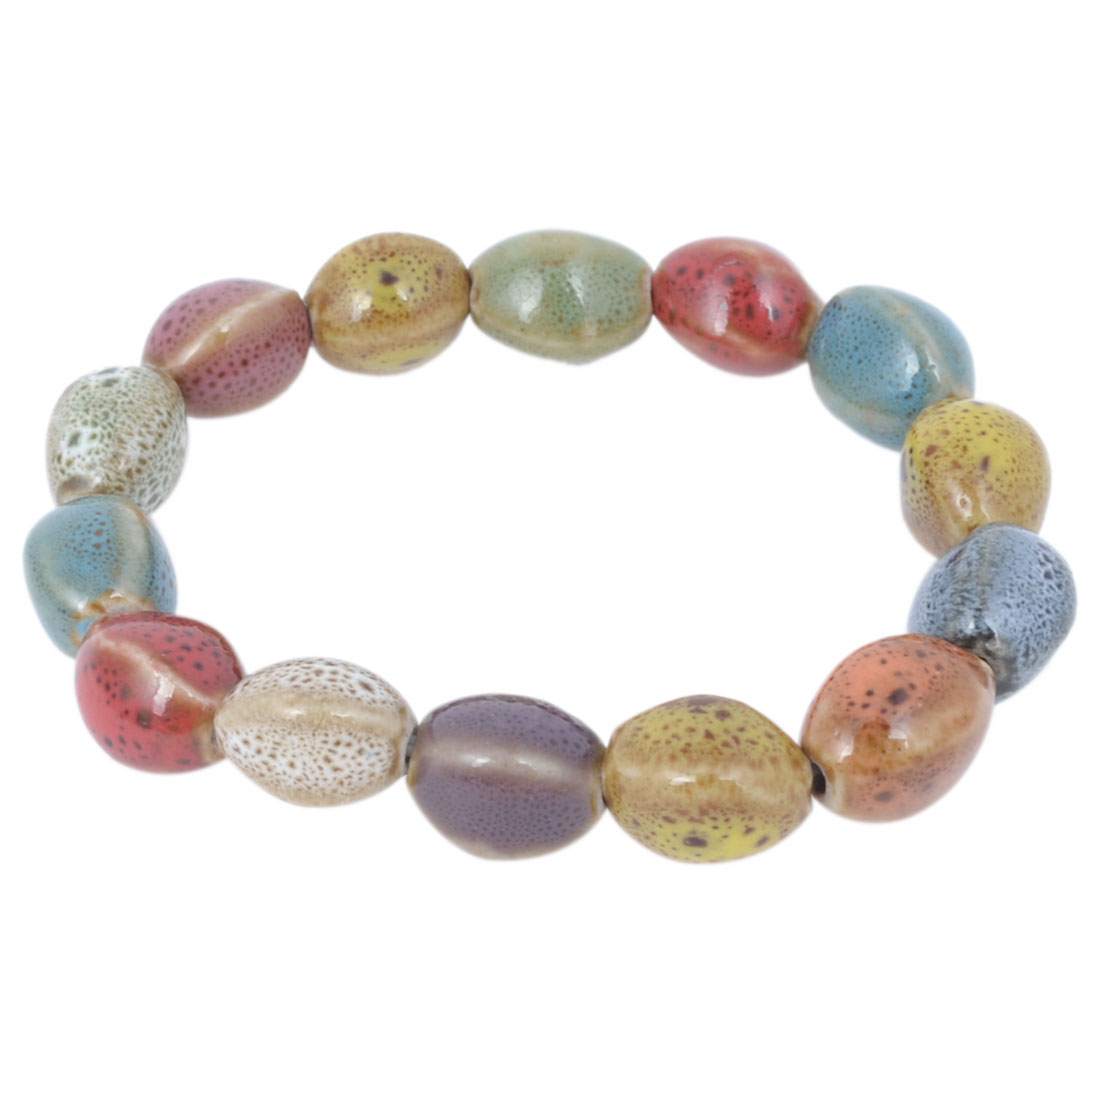 Ladies Wrist Ornament Candy Color Stretch Beaded Ceramic Bracelet Bangle